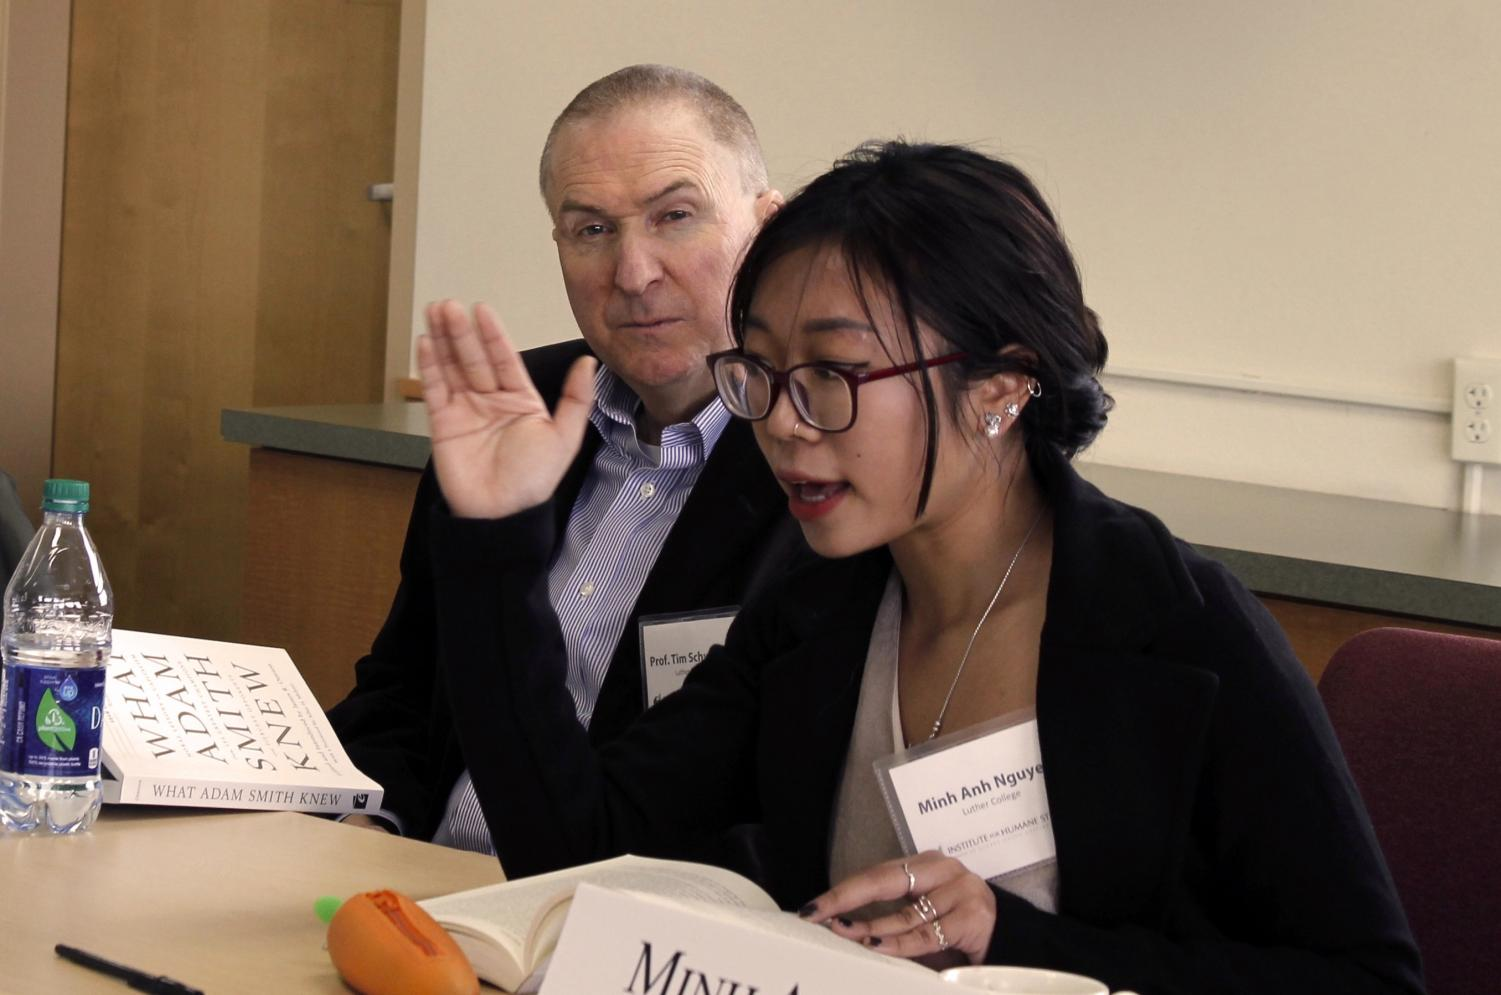 Minh Anh Nguyen ('20) and Professor of Management Tim Schweizer ('90) discuss market morality.